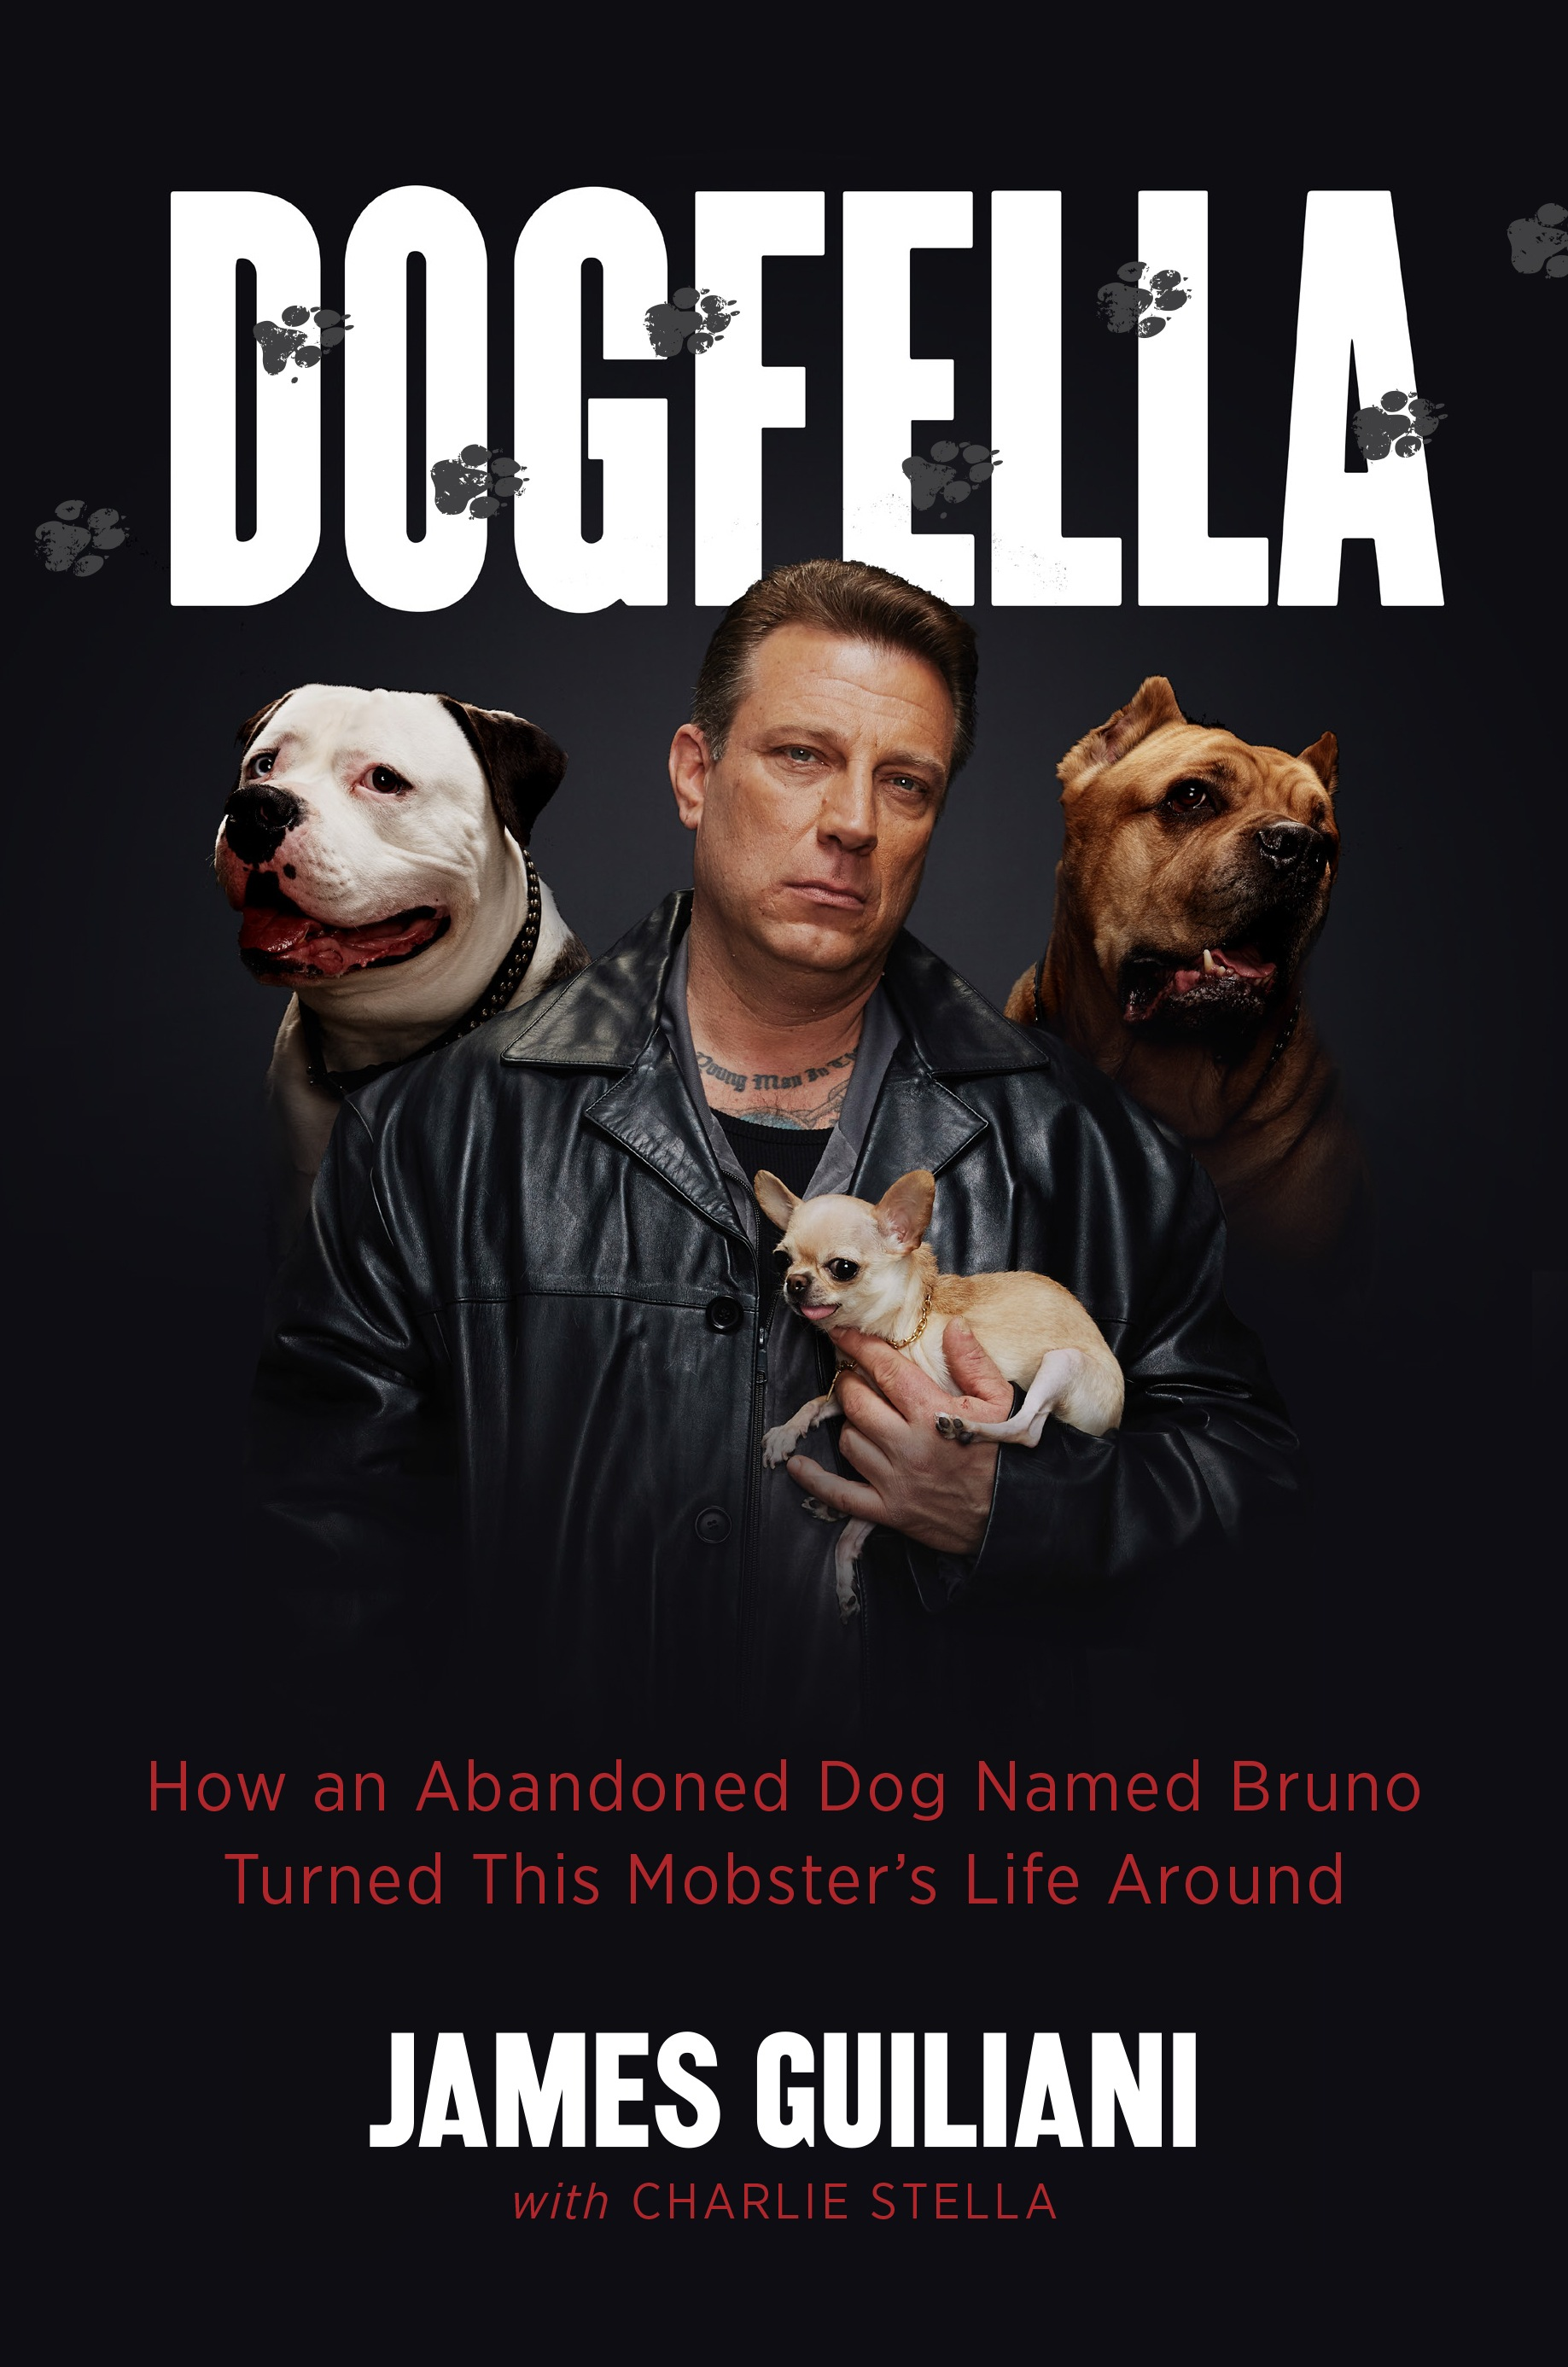 """Dogfella: How an Abandoned Dog Named Bruno Turned This Mobster's Life Around"" by James Guiliani (with Charlie Stella) c.2015, Da Capo Press $24.99 / $31.50 Canada 239 pages"